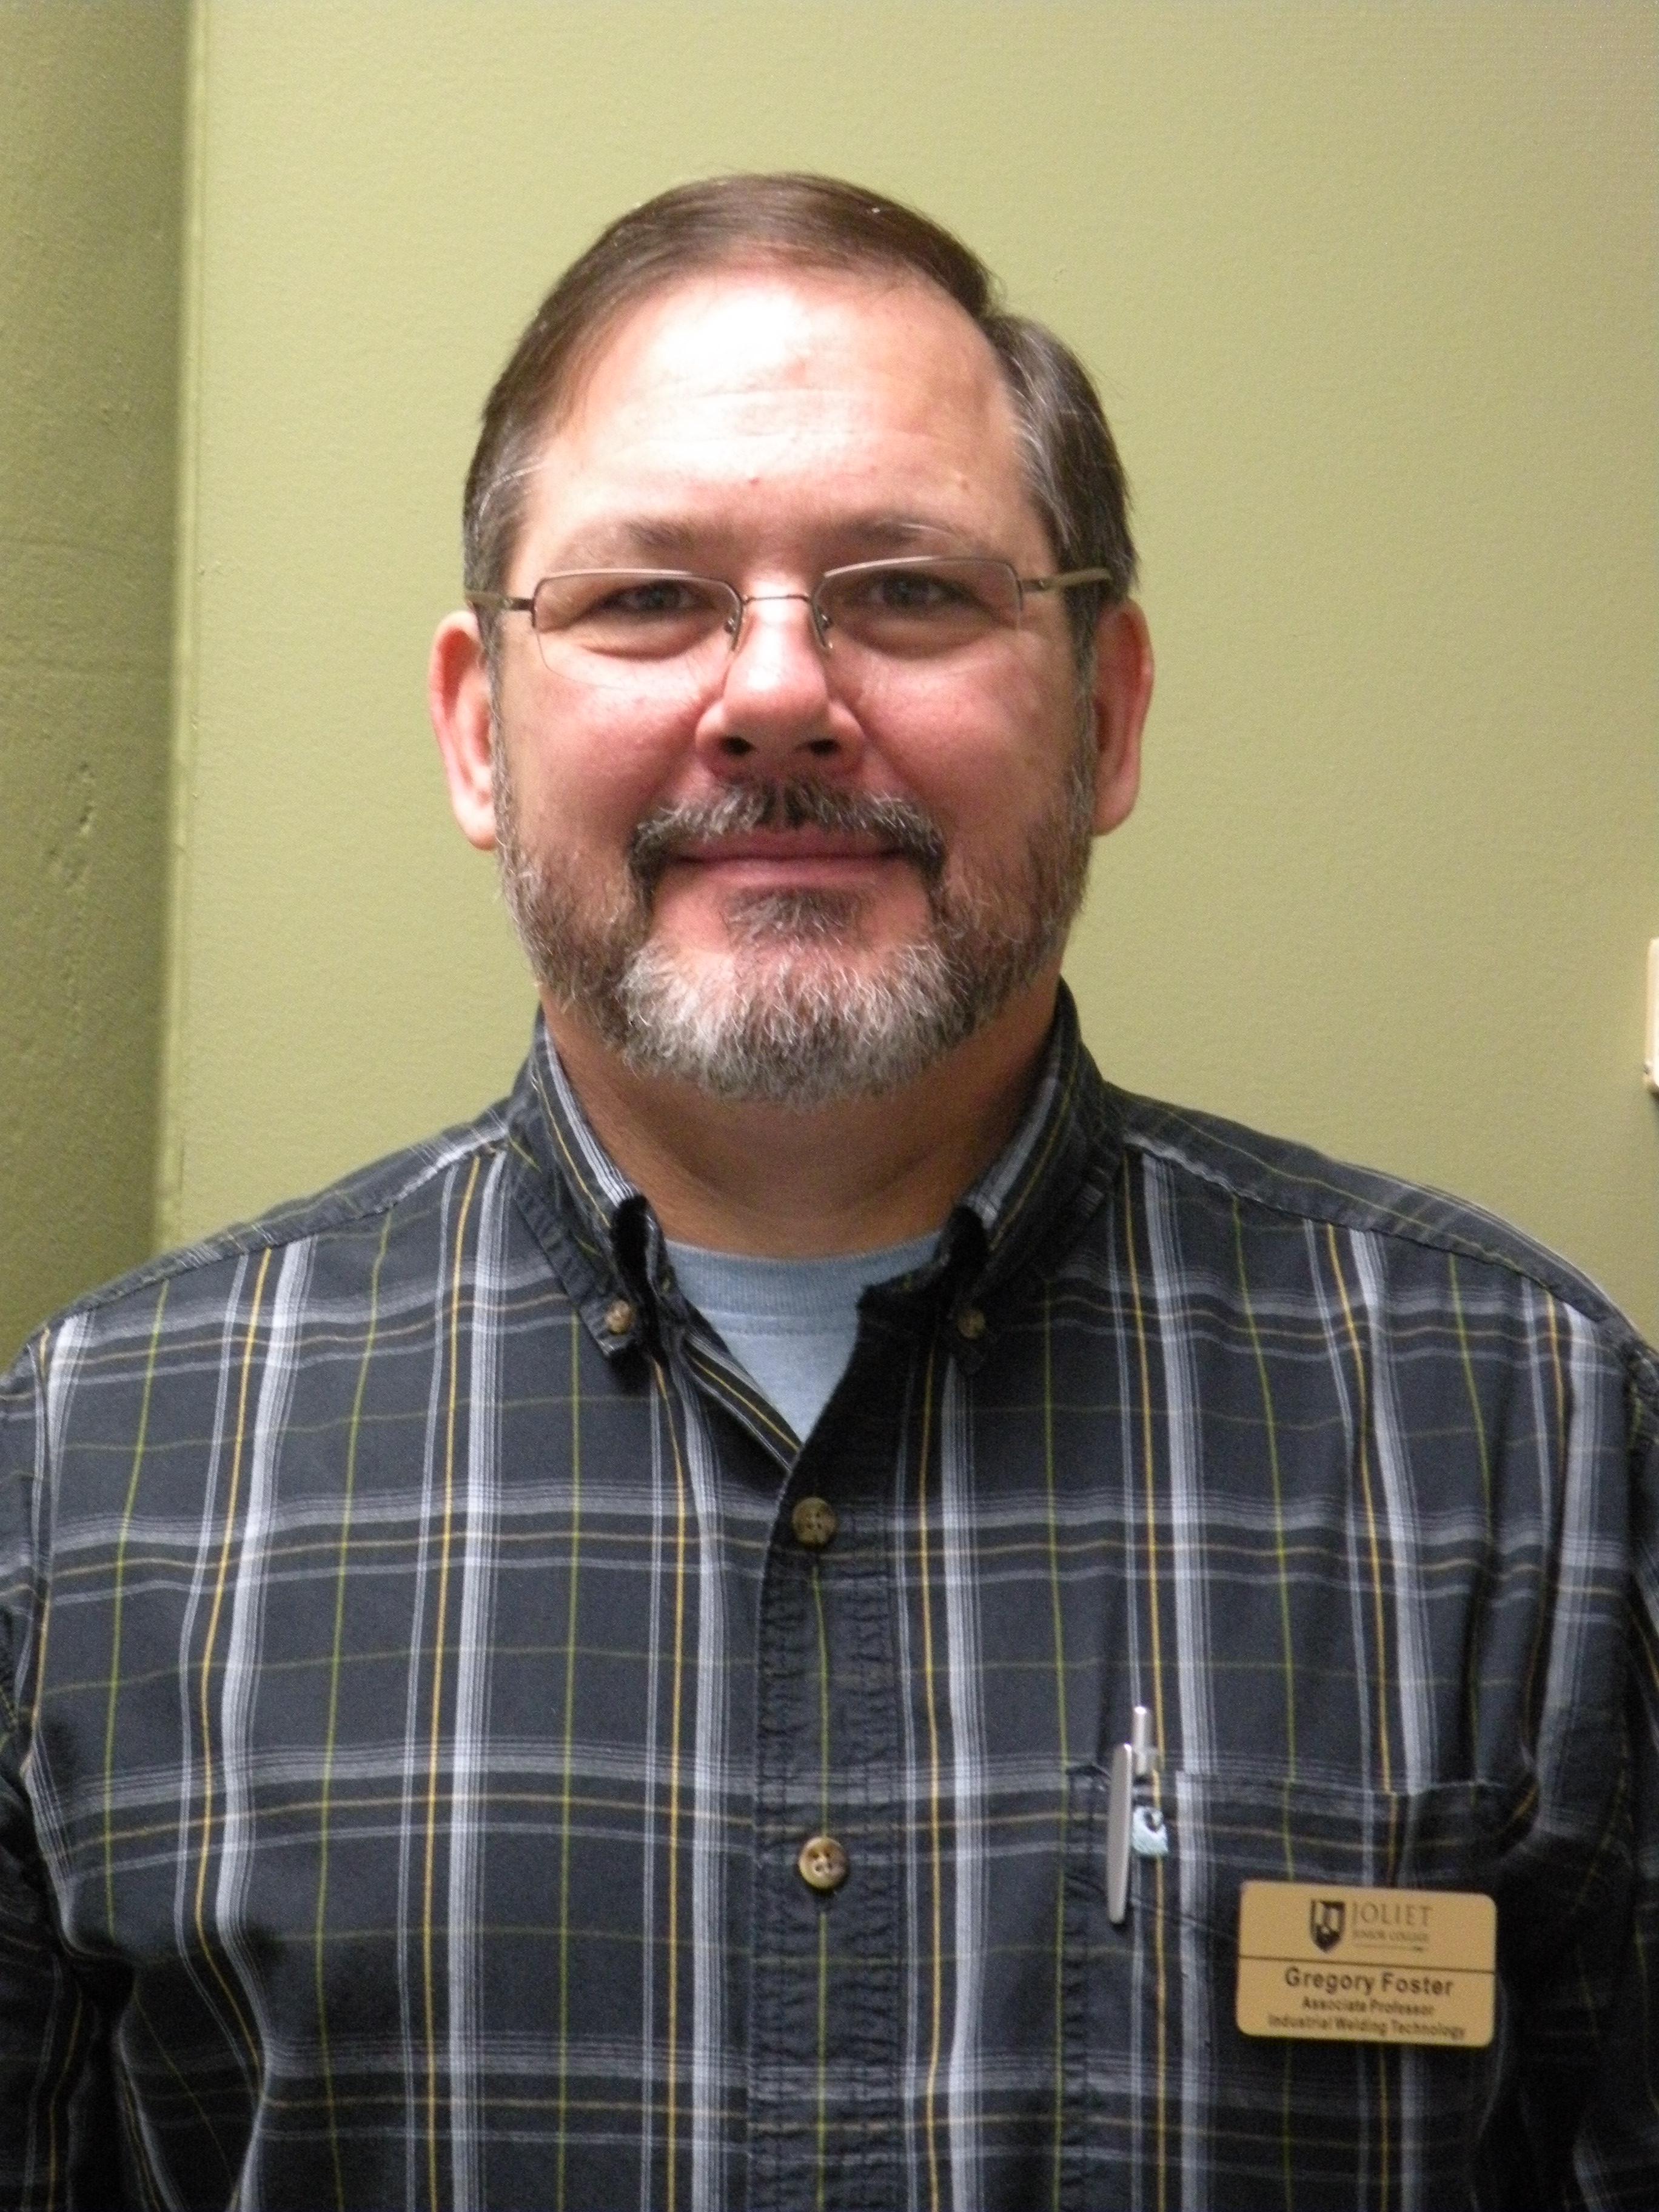 13 things you didn't know about your professors greg foster welding jjc joliet junior college